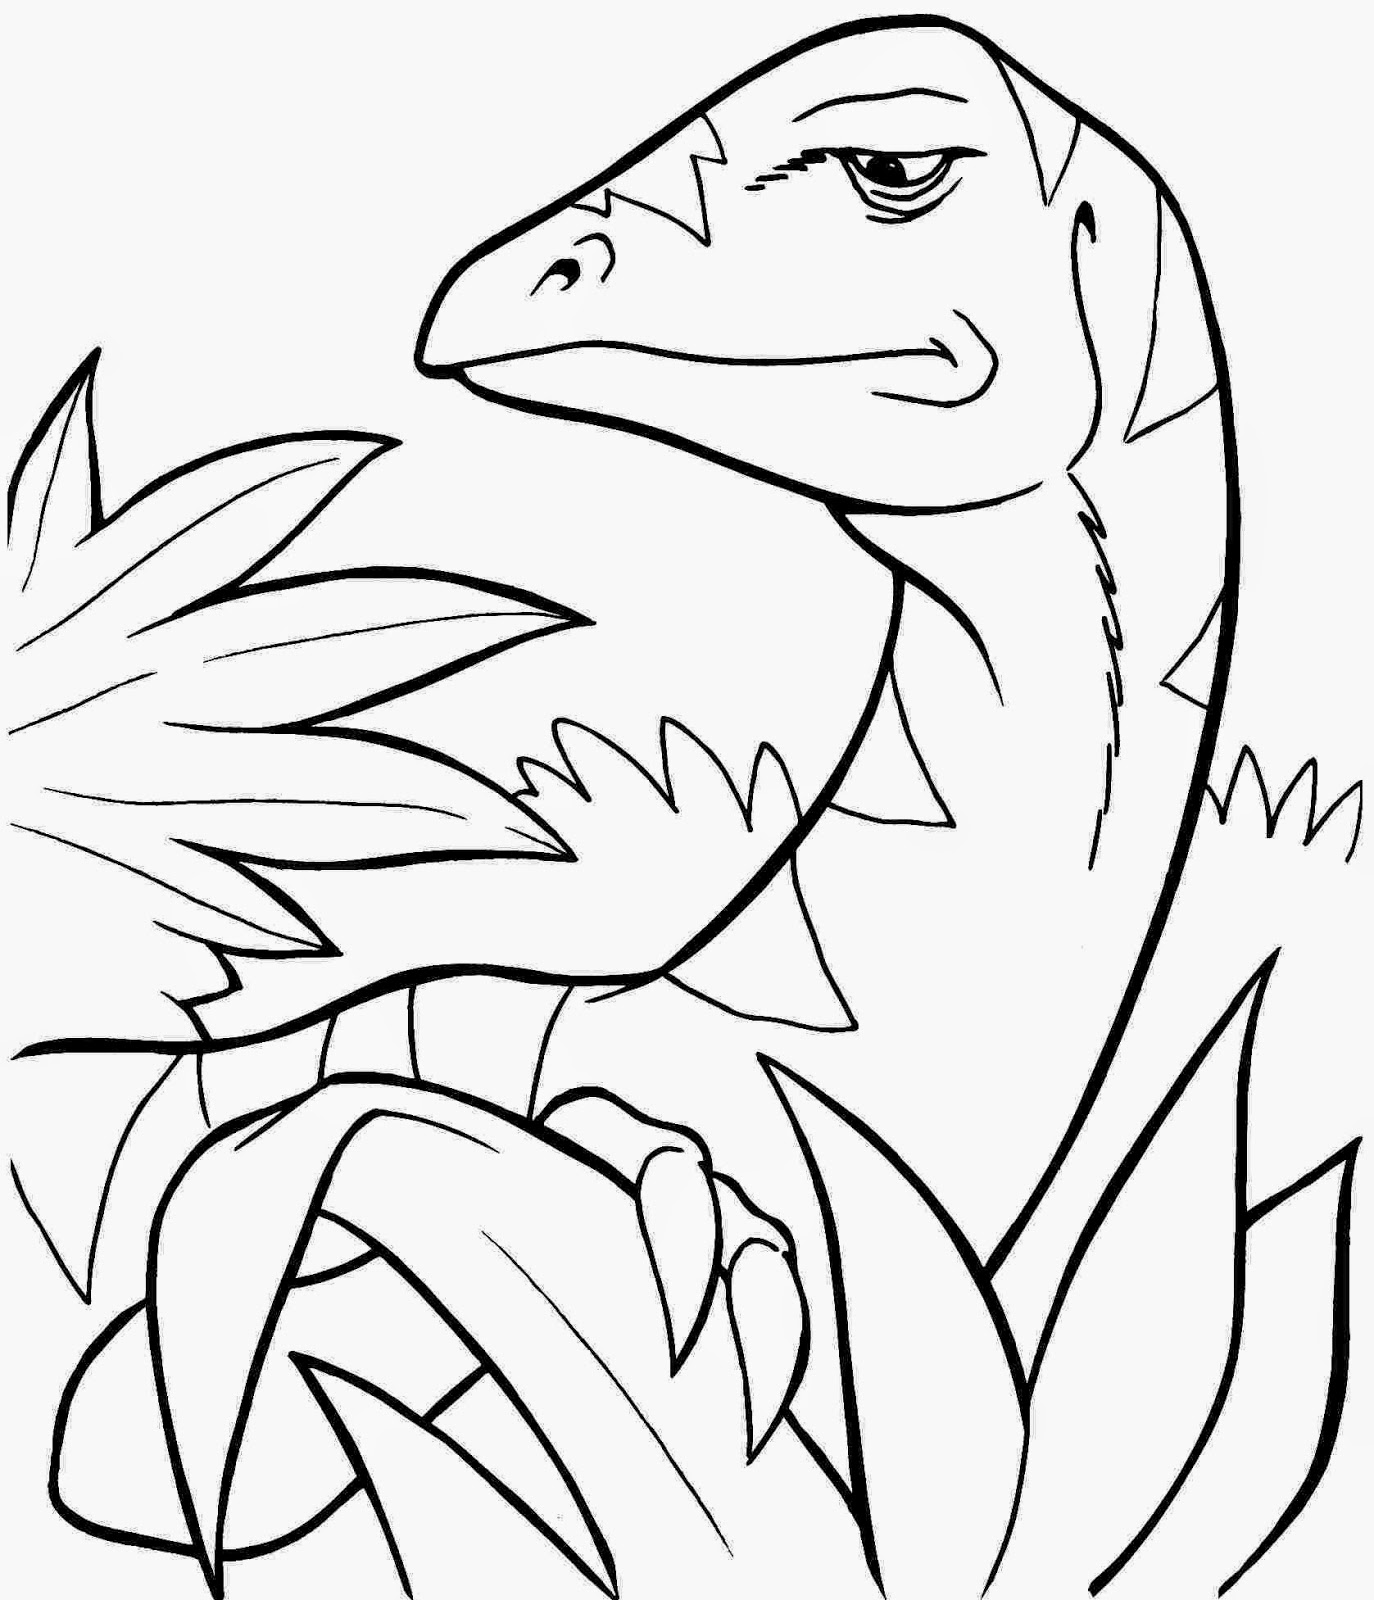 dinosaurs color pages coloring pages dinosaur free printable coloring pages color pages dinosaurs